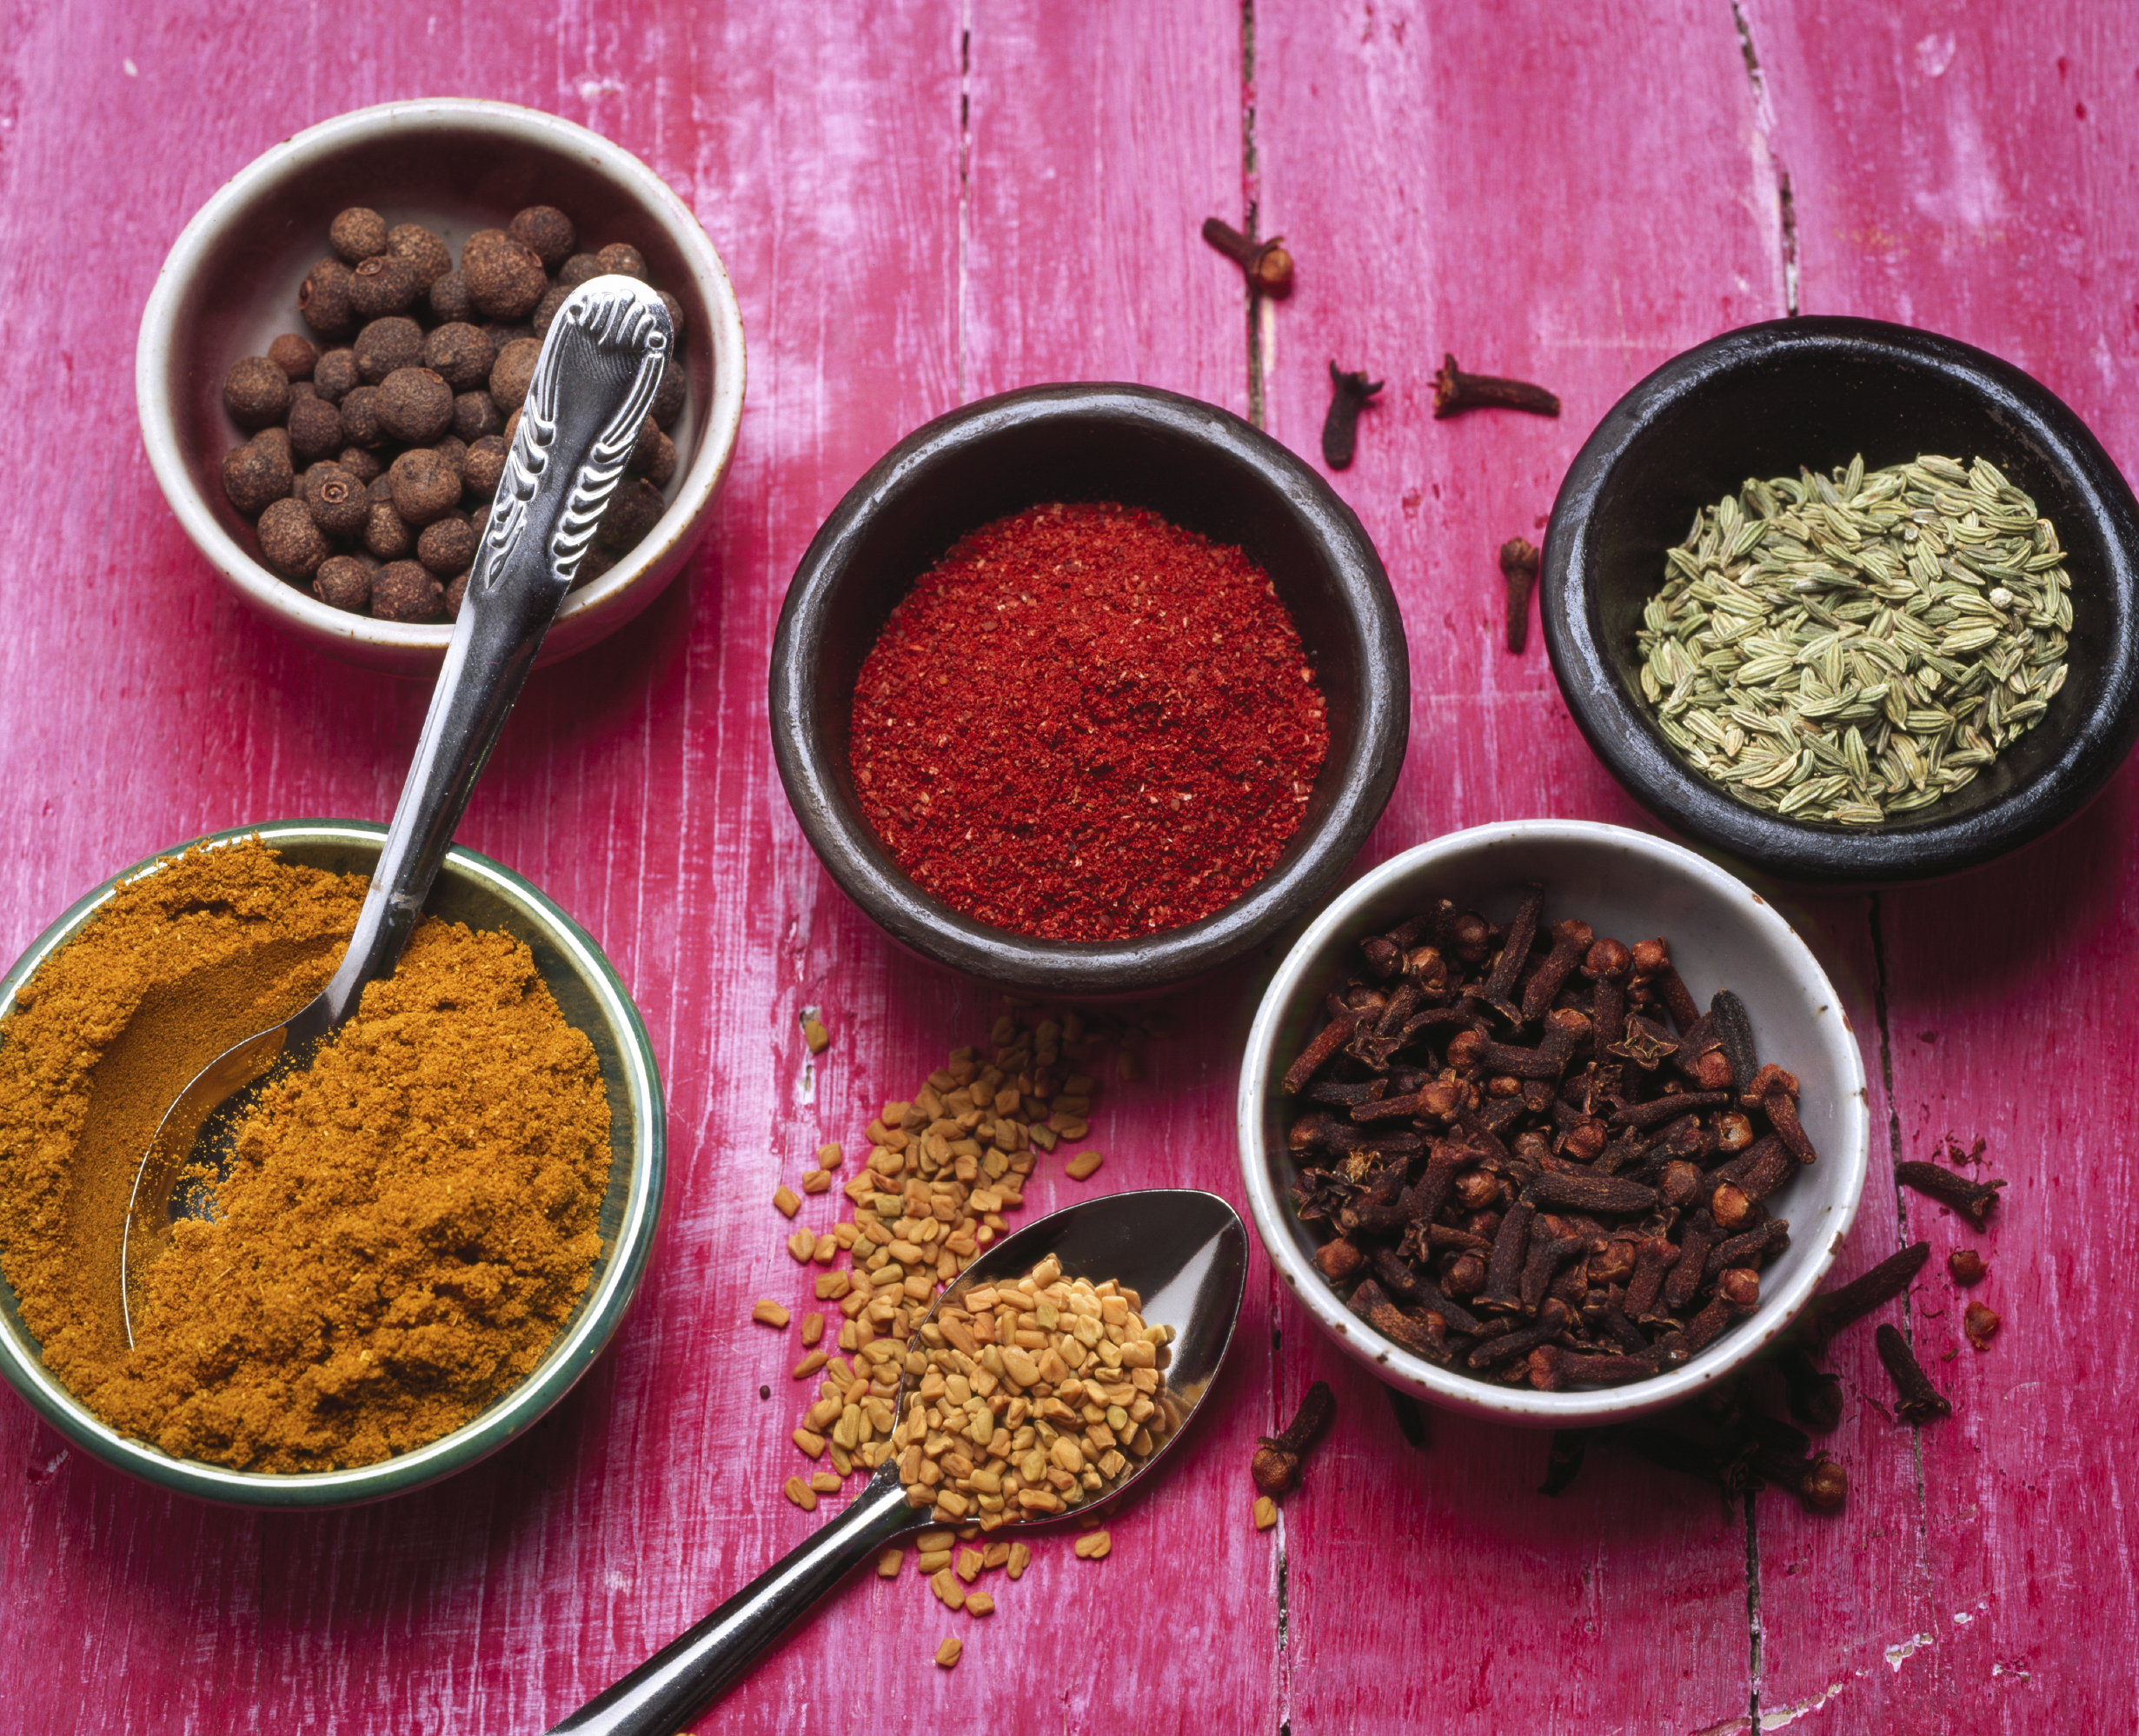 Food spices 64197027_Large.jpg